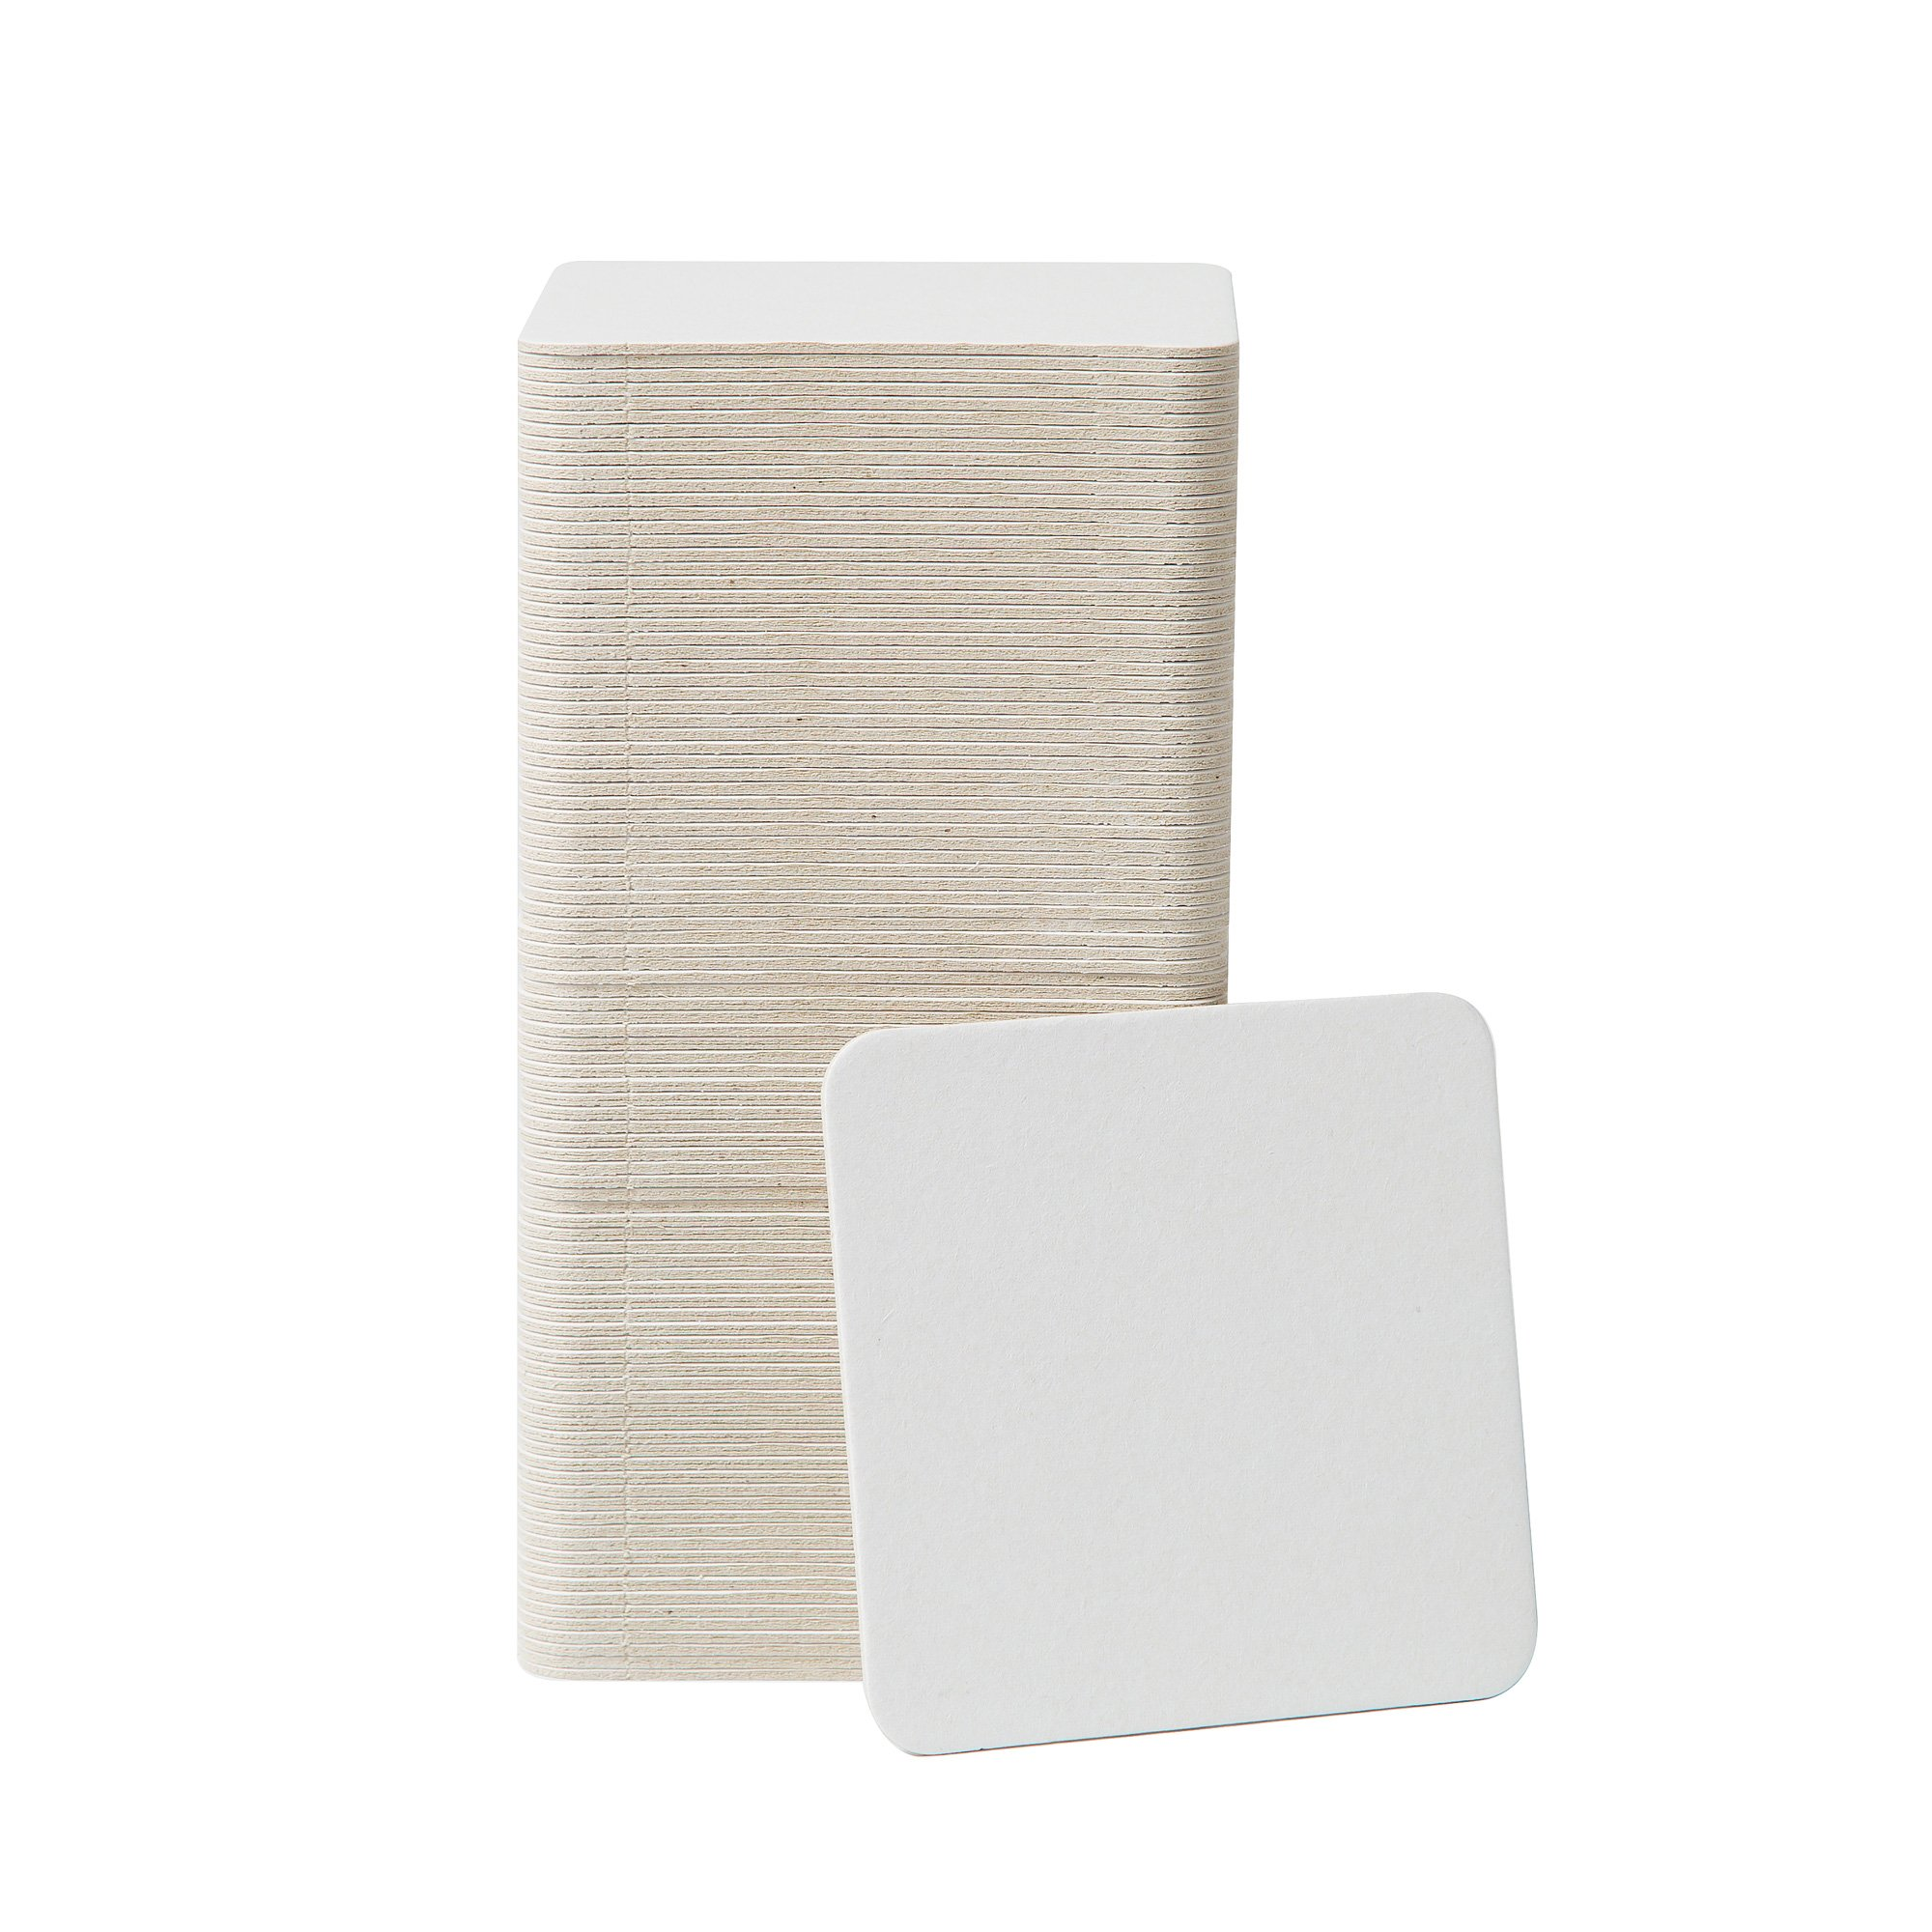 BAR DUDES Cardboard Coasters 100 Pack 4''x4'' Square - White Blank Coasters Bulk Set - Paper Coasters for Drinks, DIY, Kids Arts and Crafts